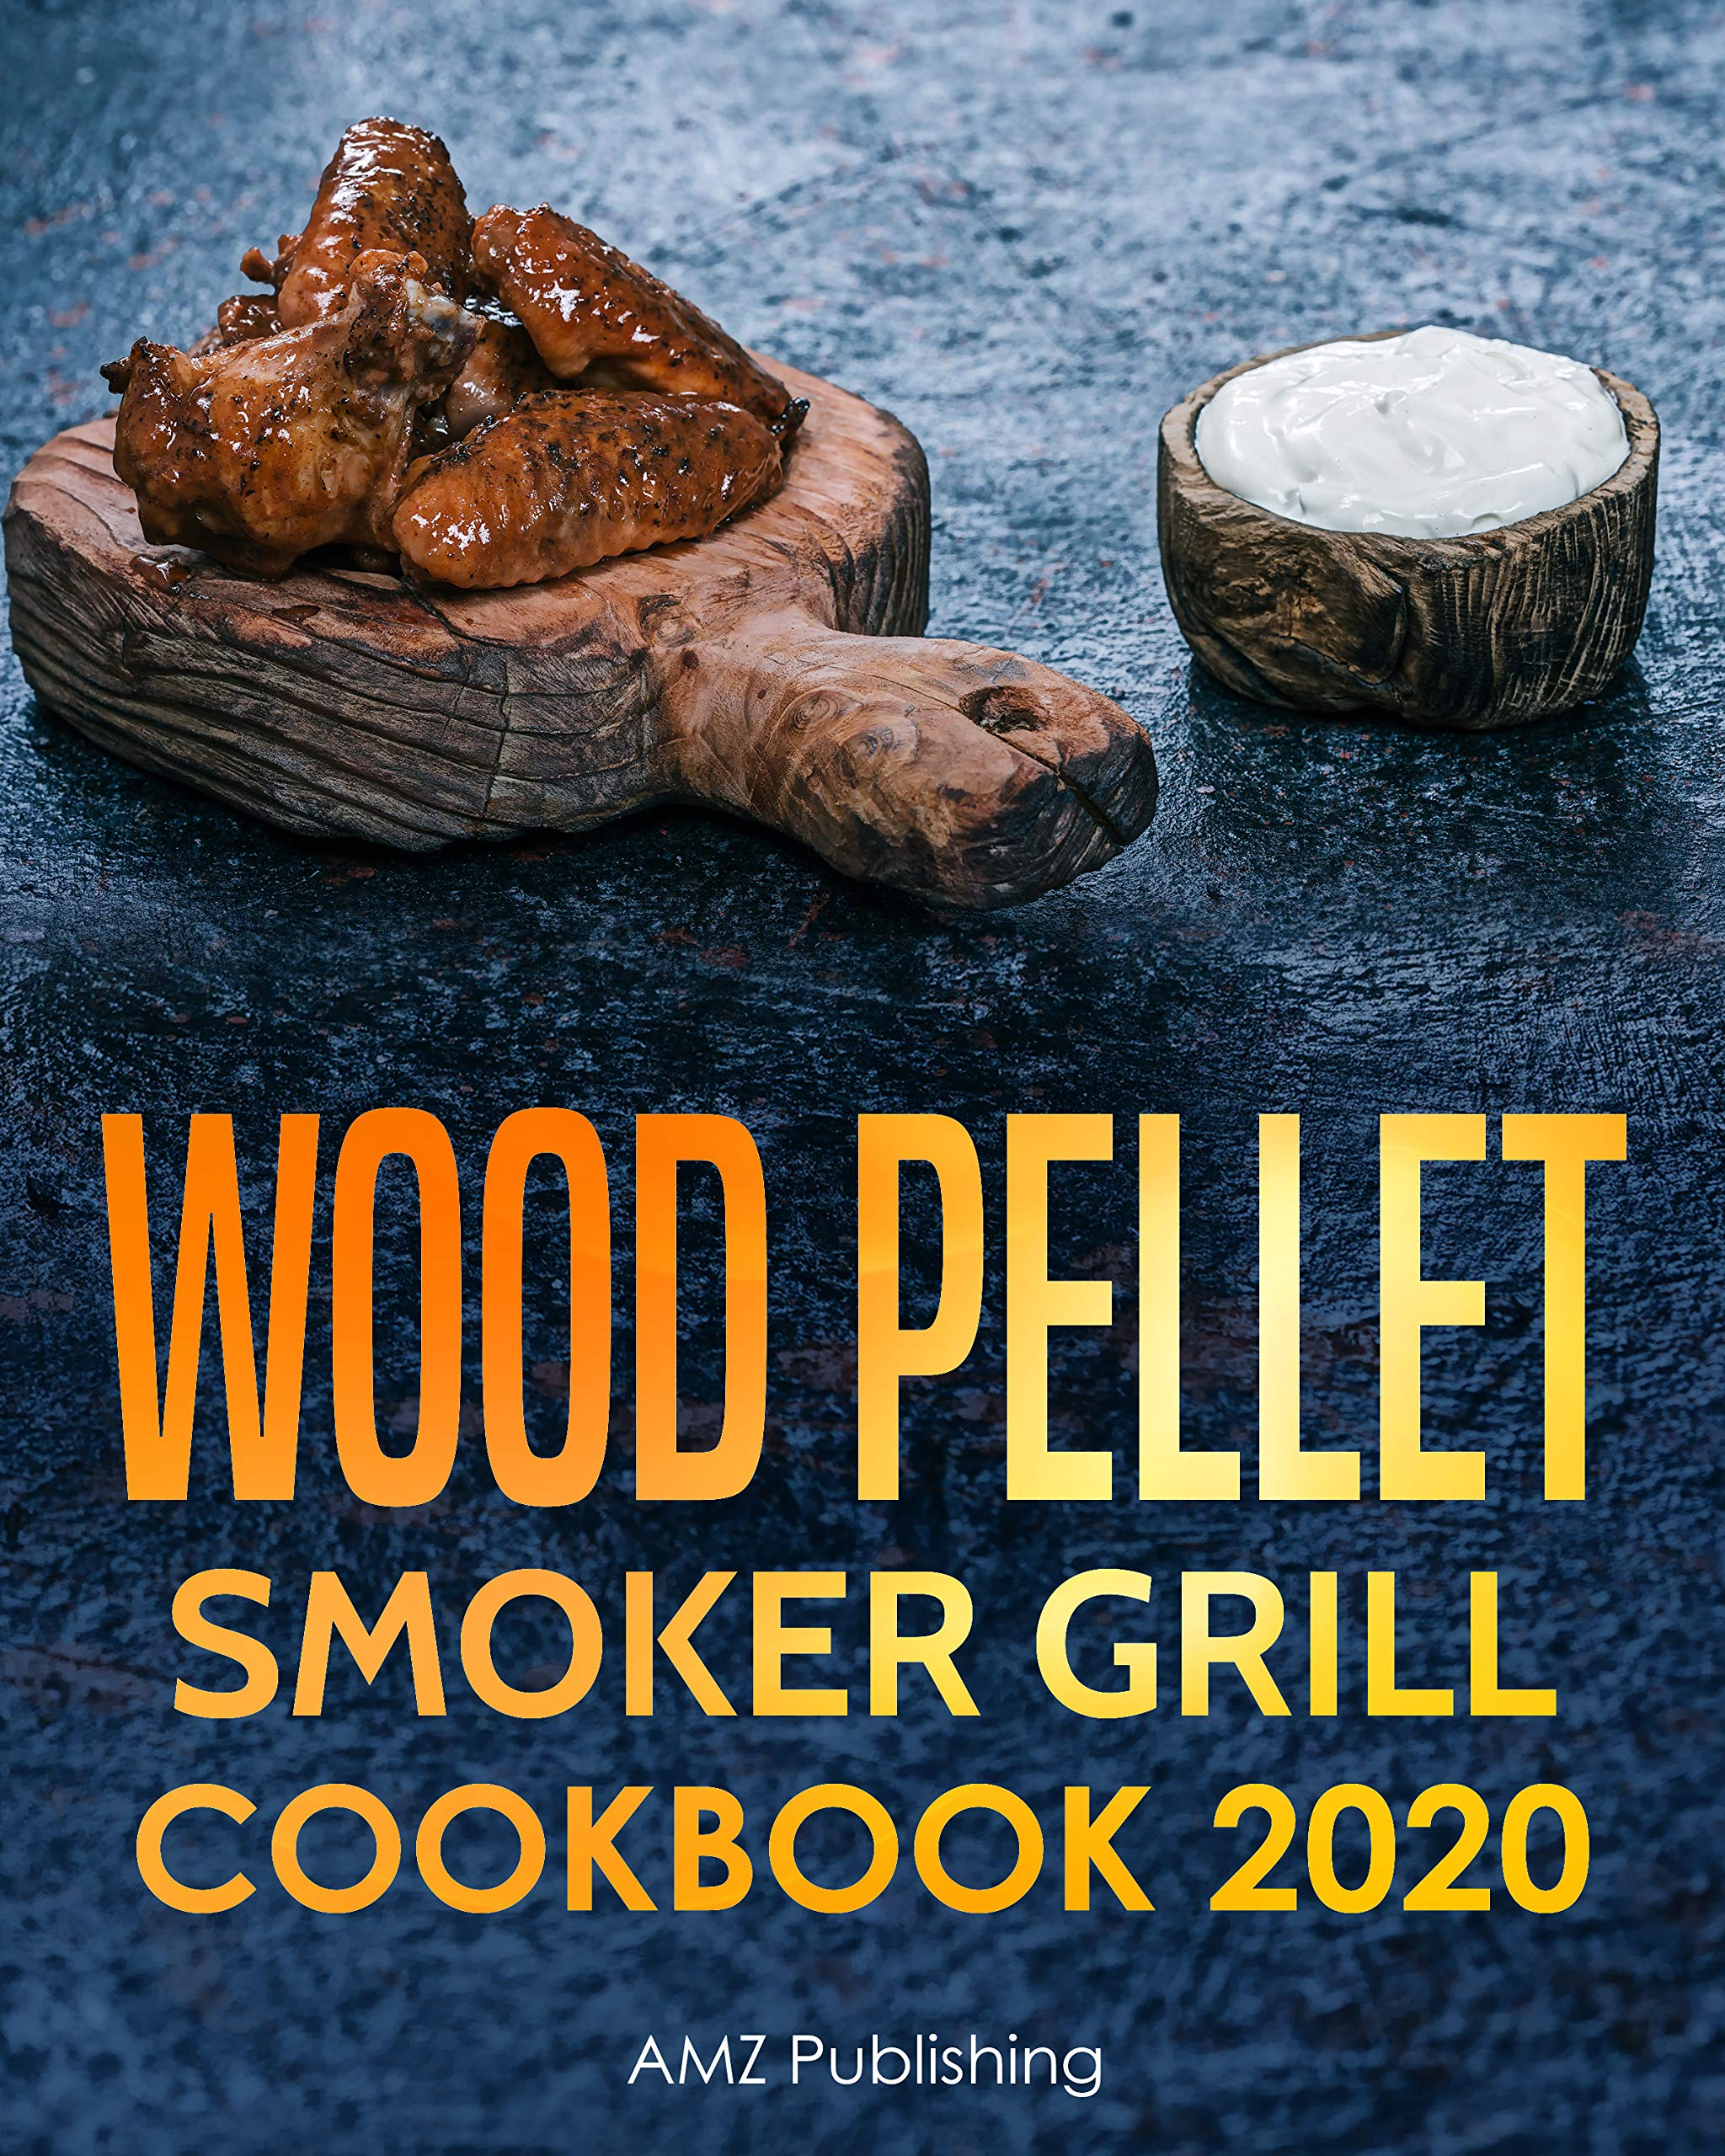 Wood Pellet Smoker Grill Cookbook 2020: The Ultimate Wood Pellet Grill Cookbook For You And Your Family: Complete Wood Smo...